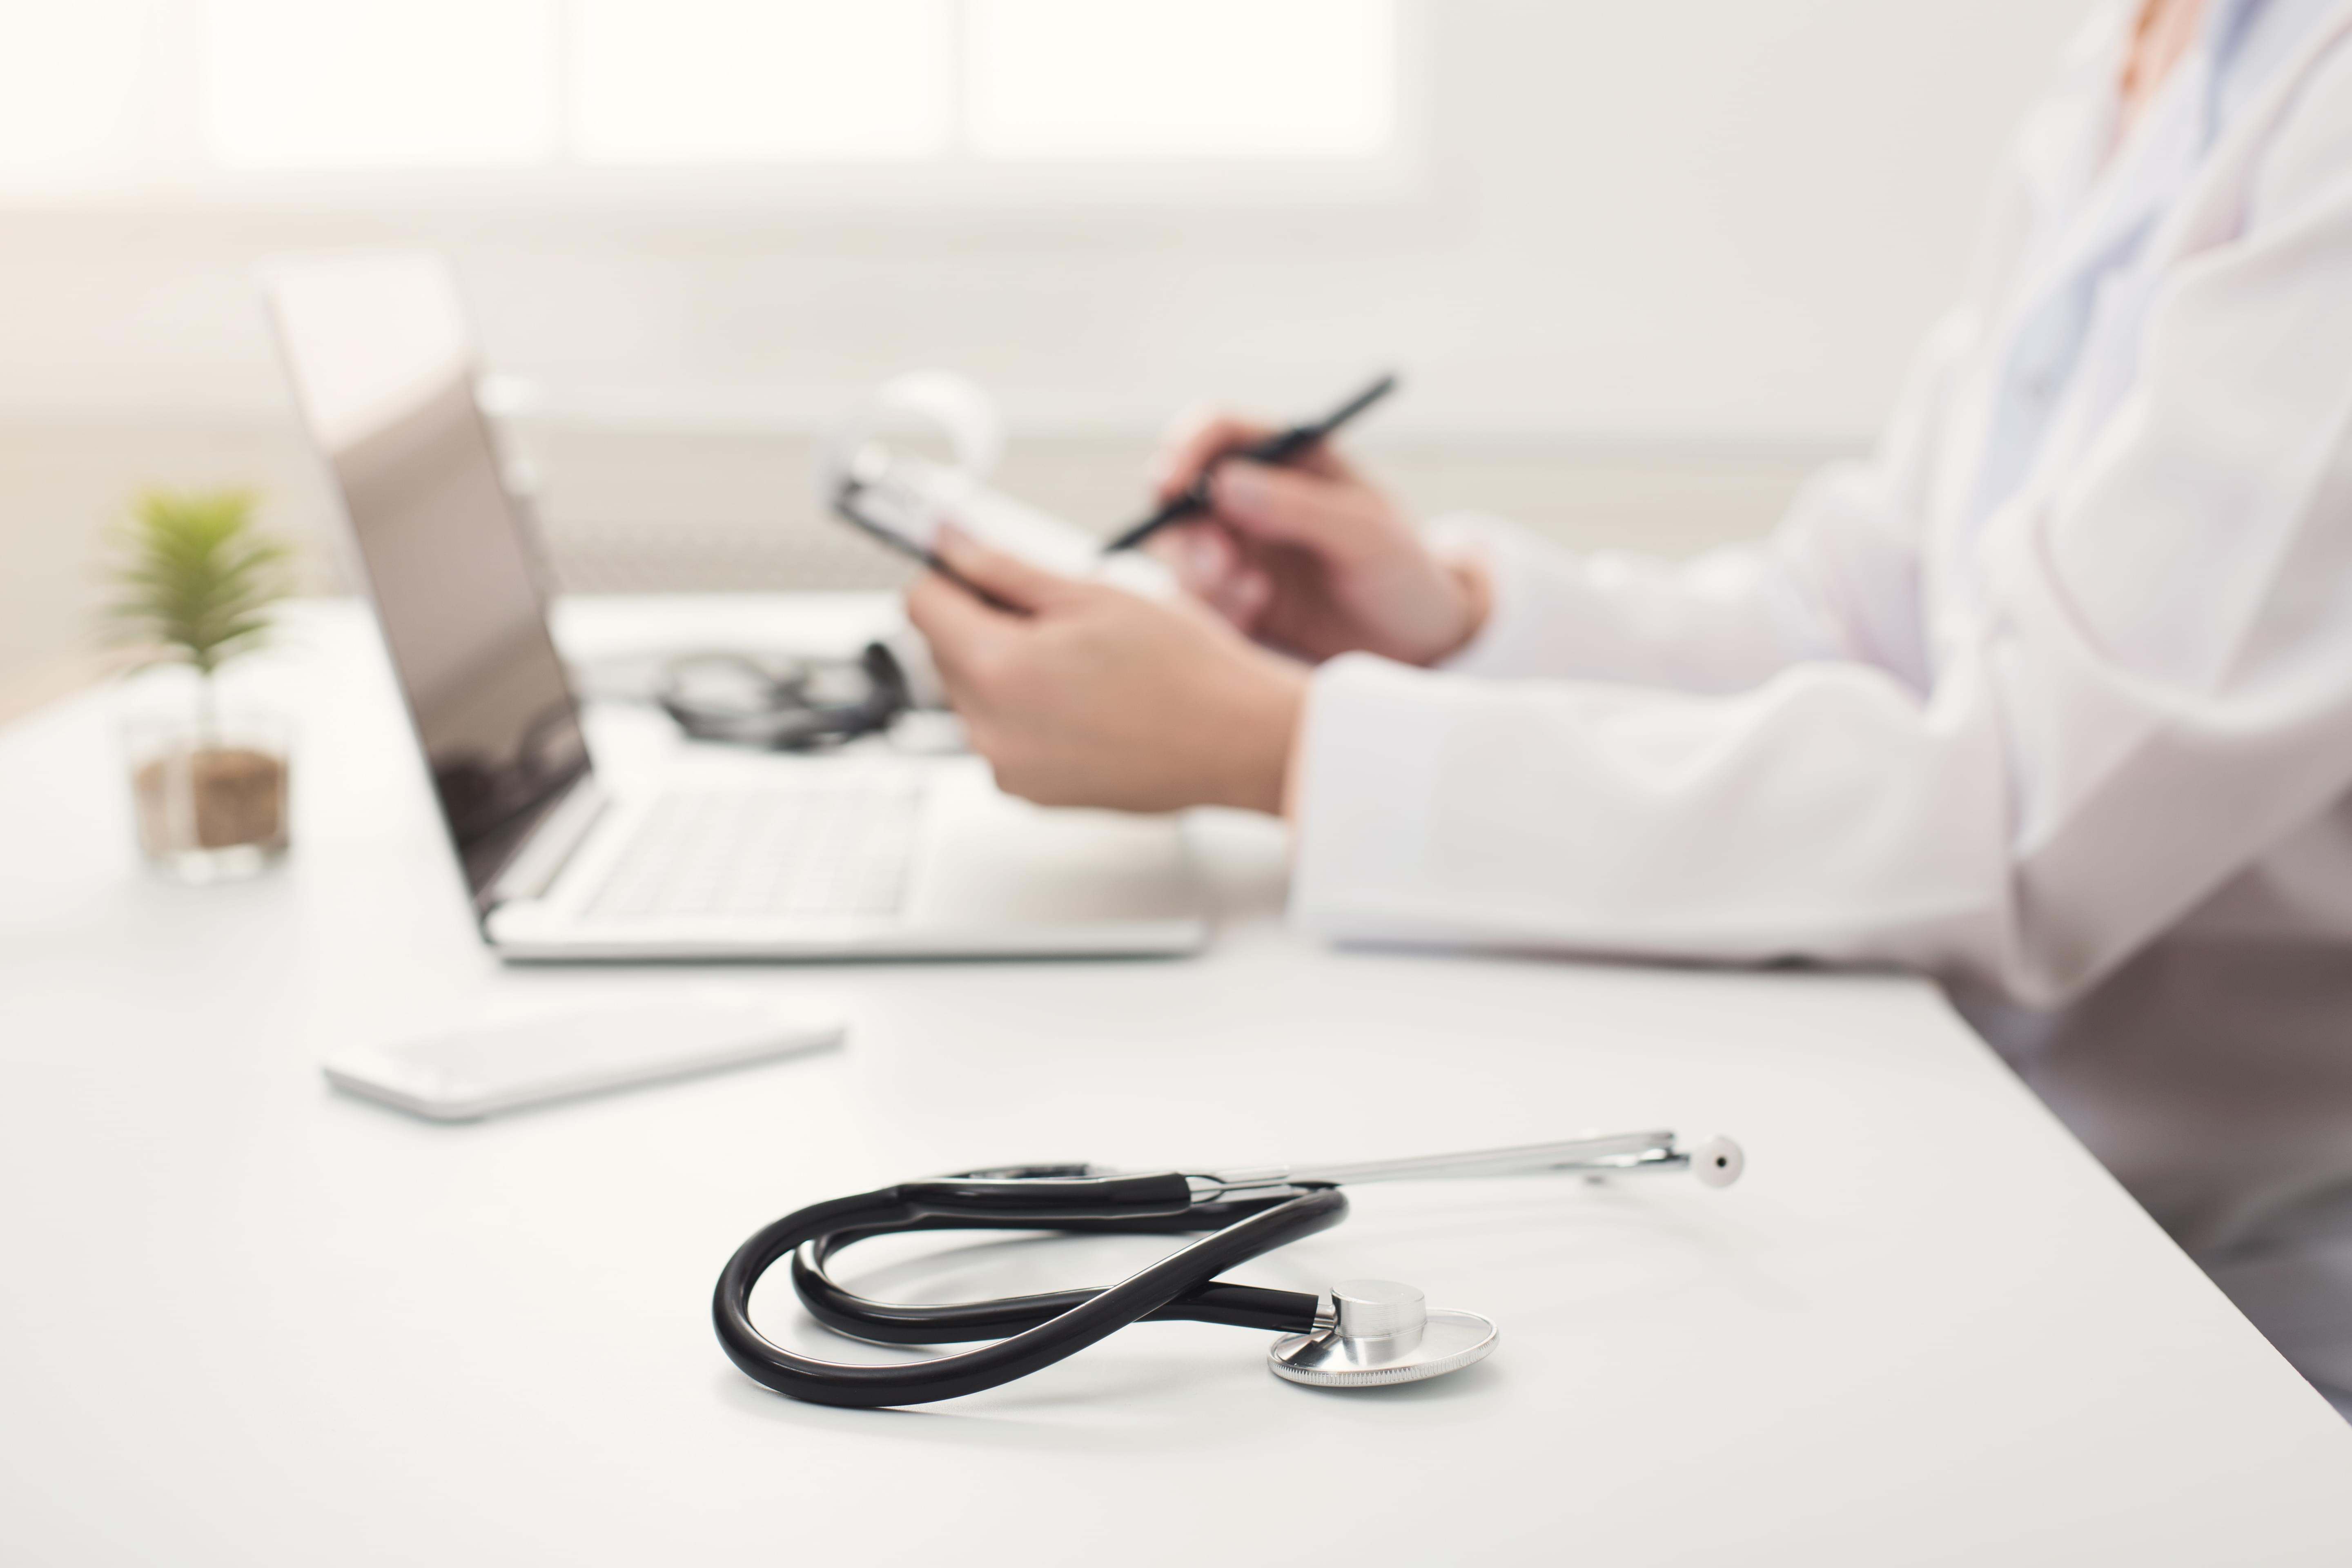 5 Cerner EHR Competitors for Hospitals and Small Practices